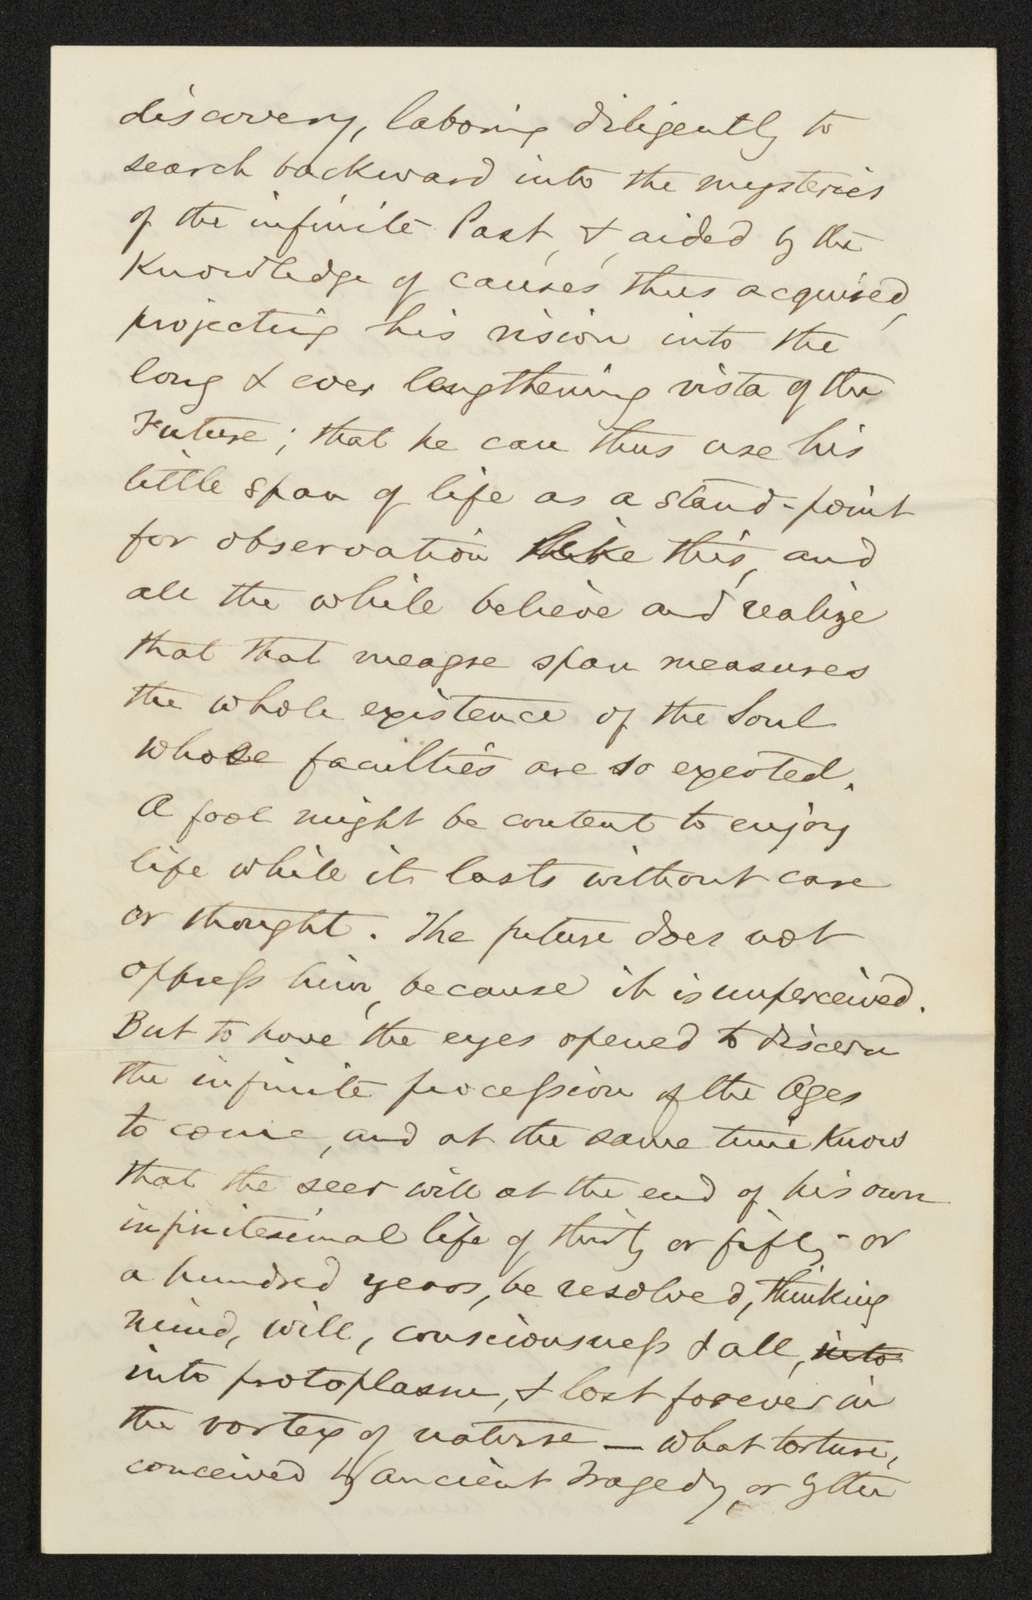 Lewis H. Machen Family Papers: Machen-Gresham Correspondence, 1871-1889; Machen, Arthur W., to Gresham, Minnie; 1871